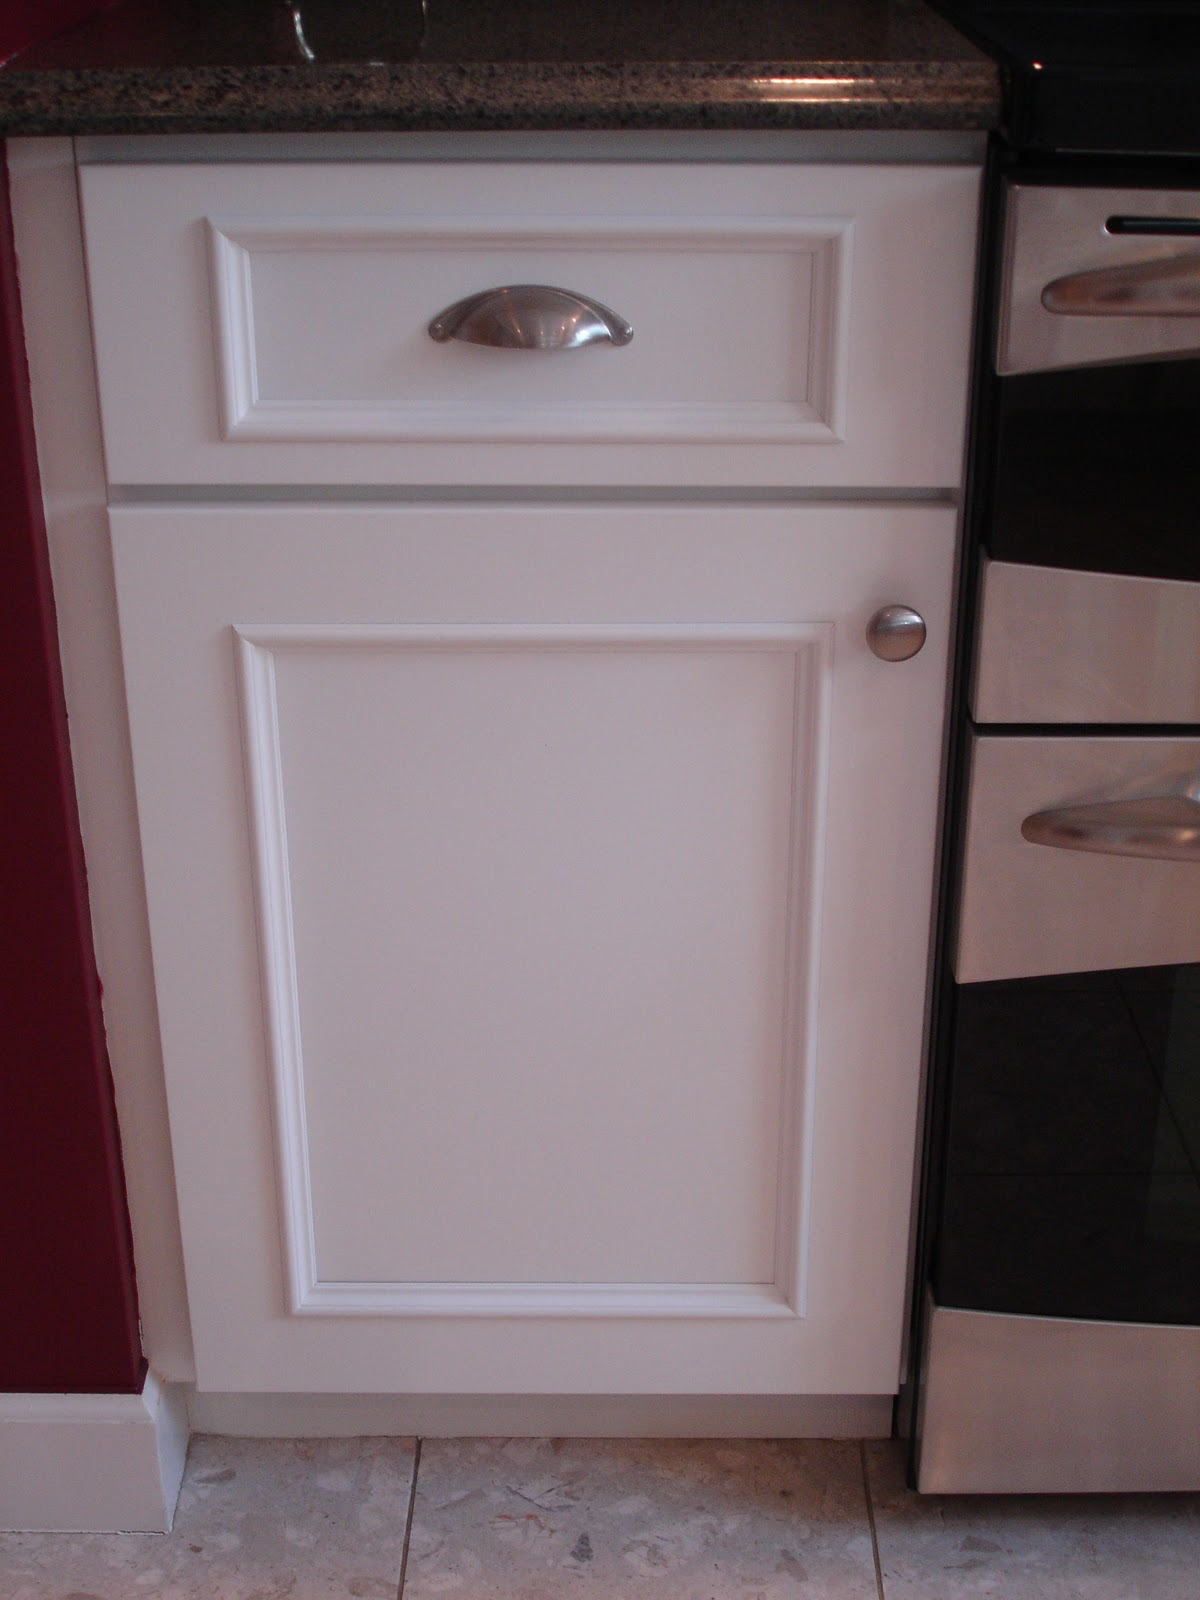 How to Add Molding to Flat CabiDoors